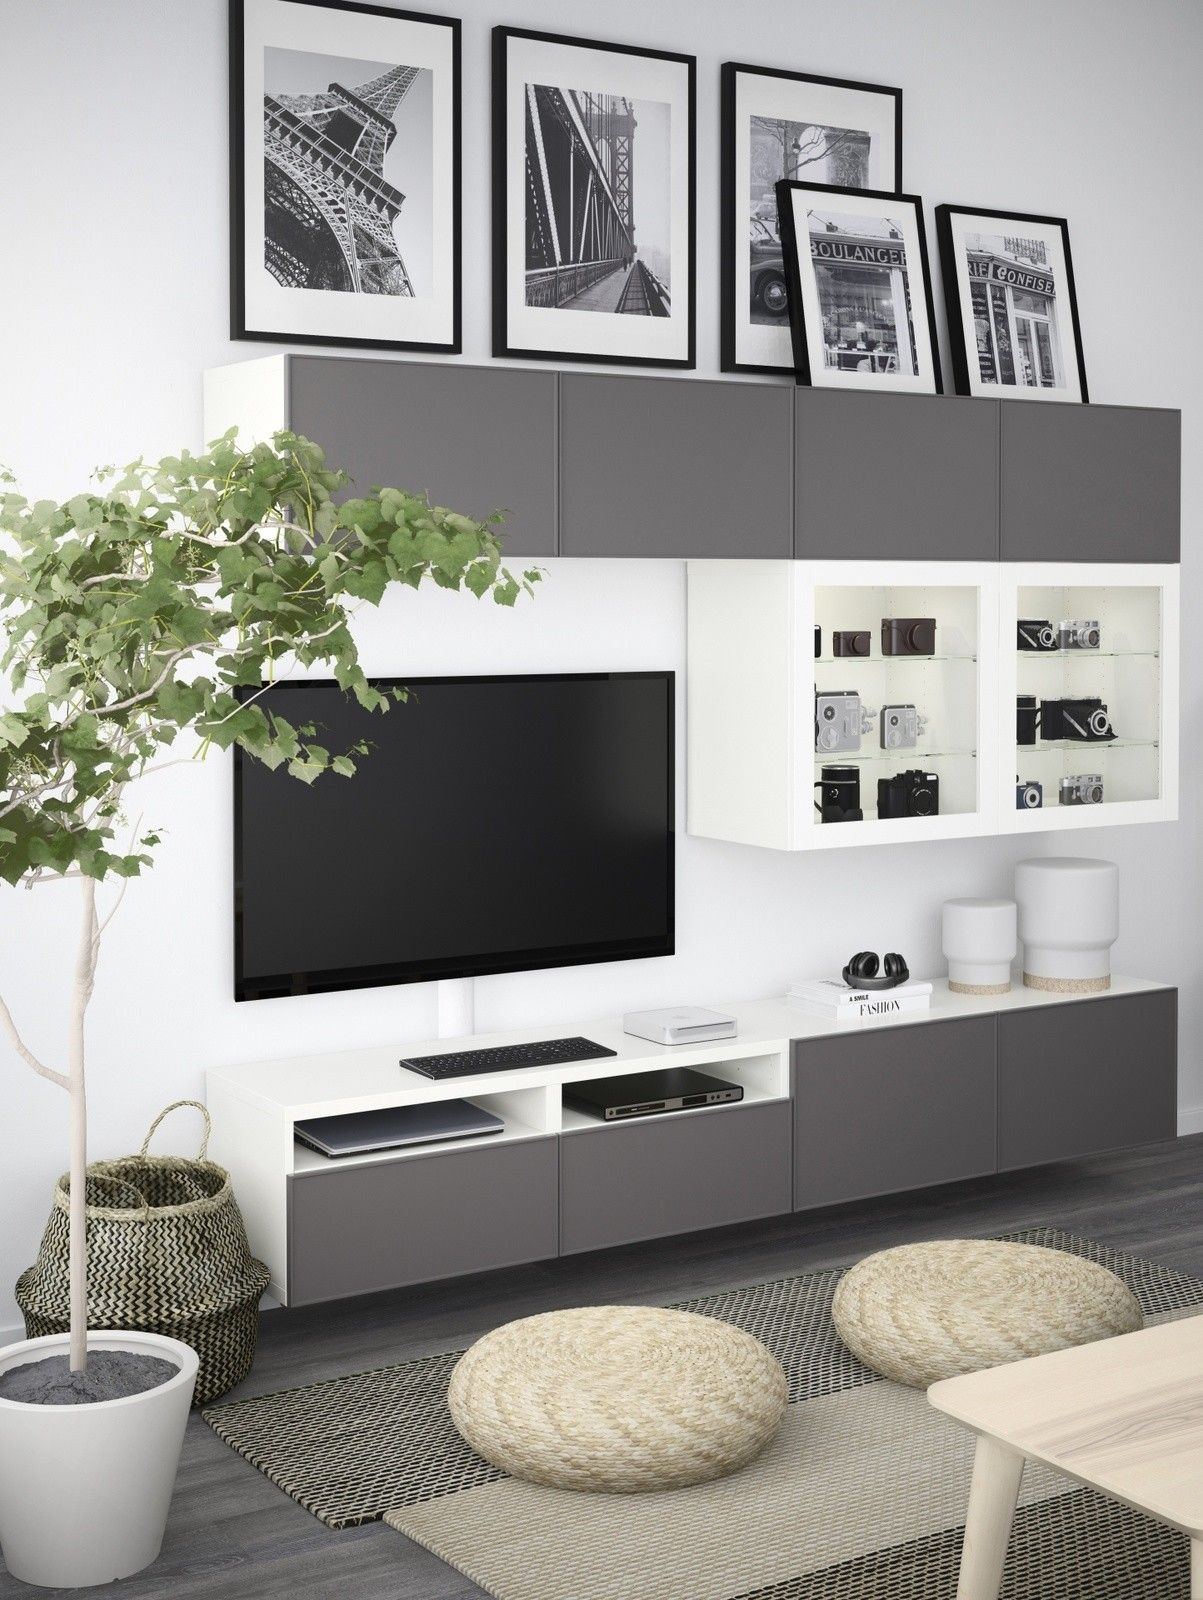 TV wall styling idea via